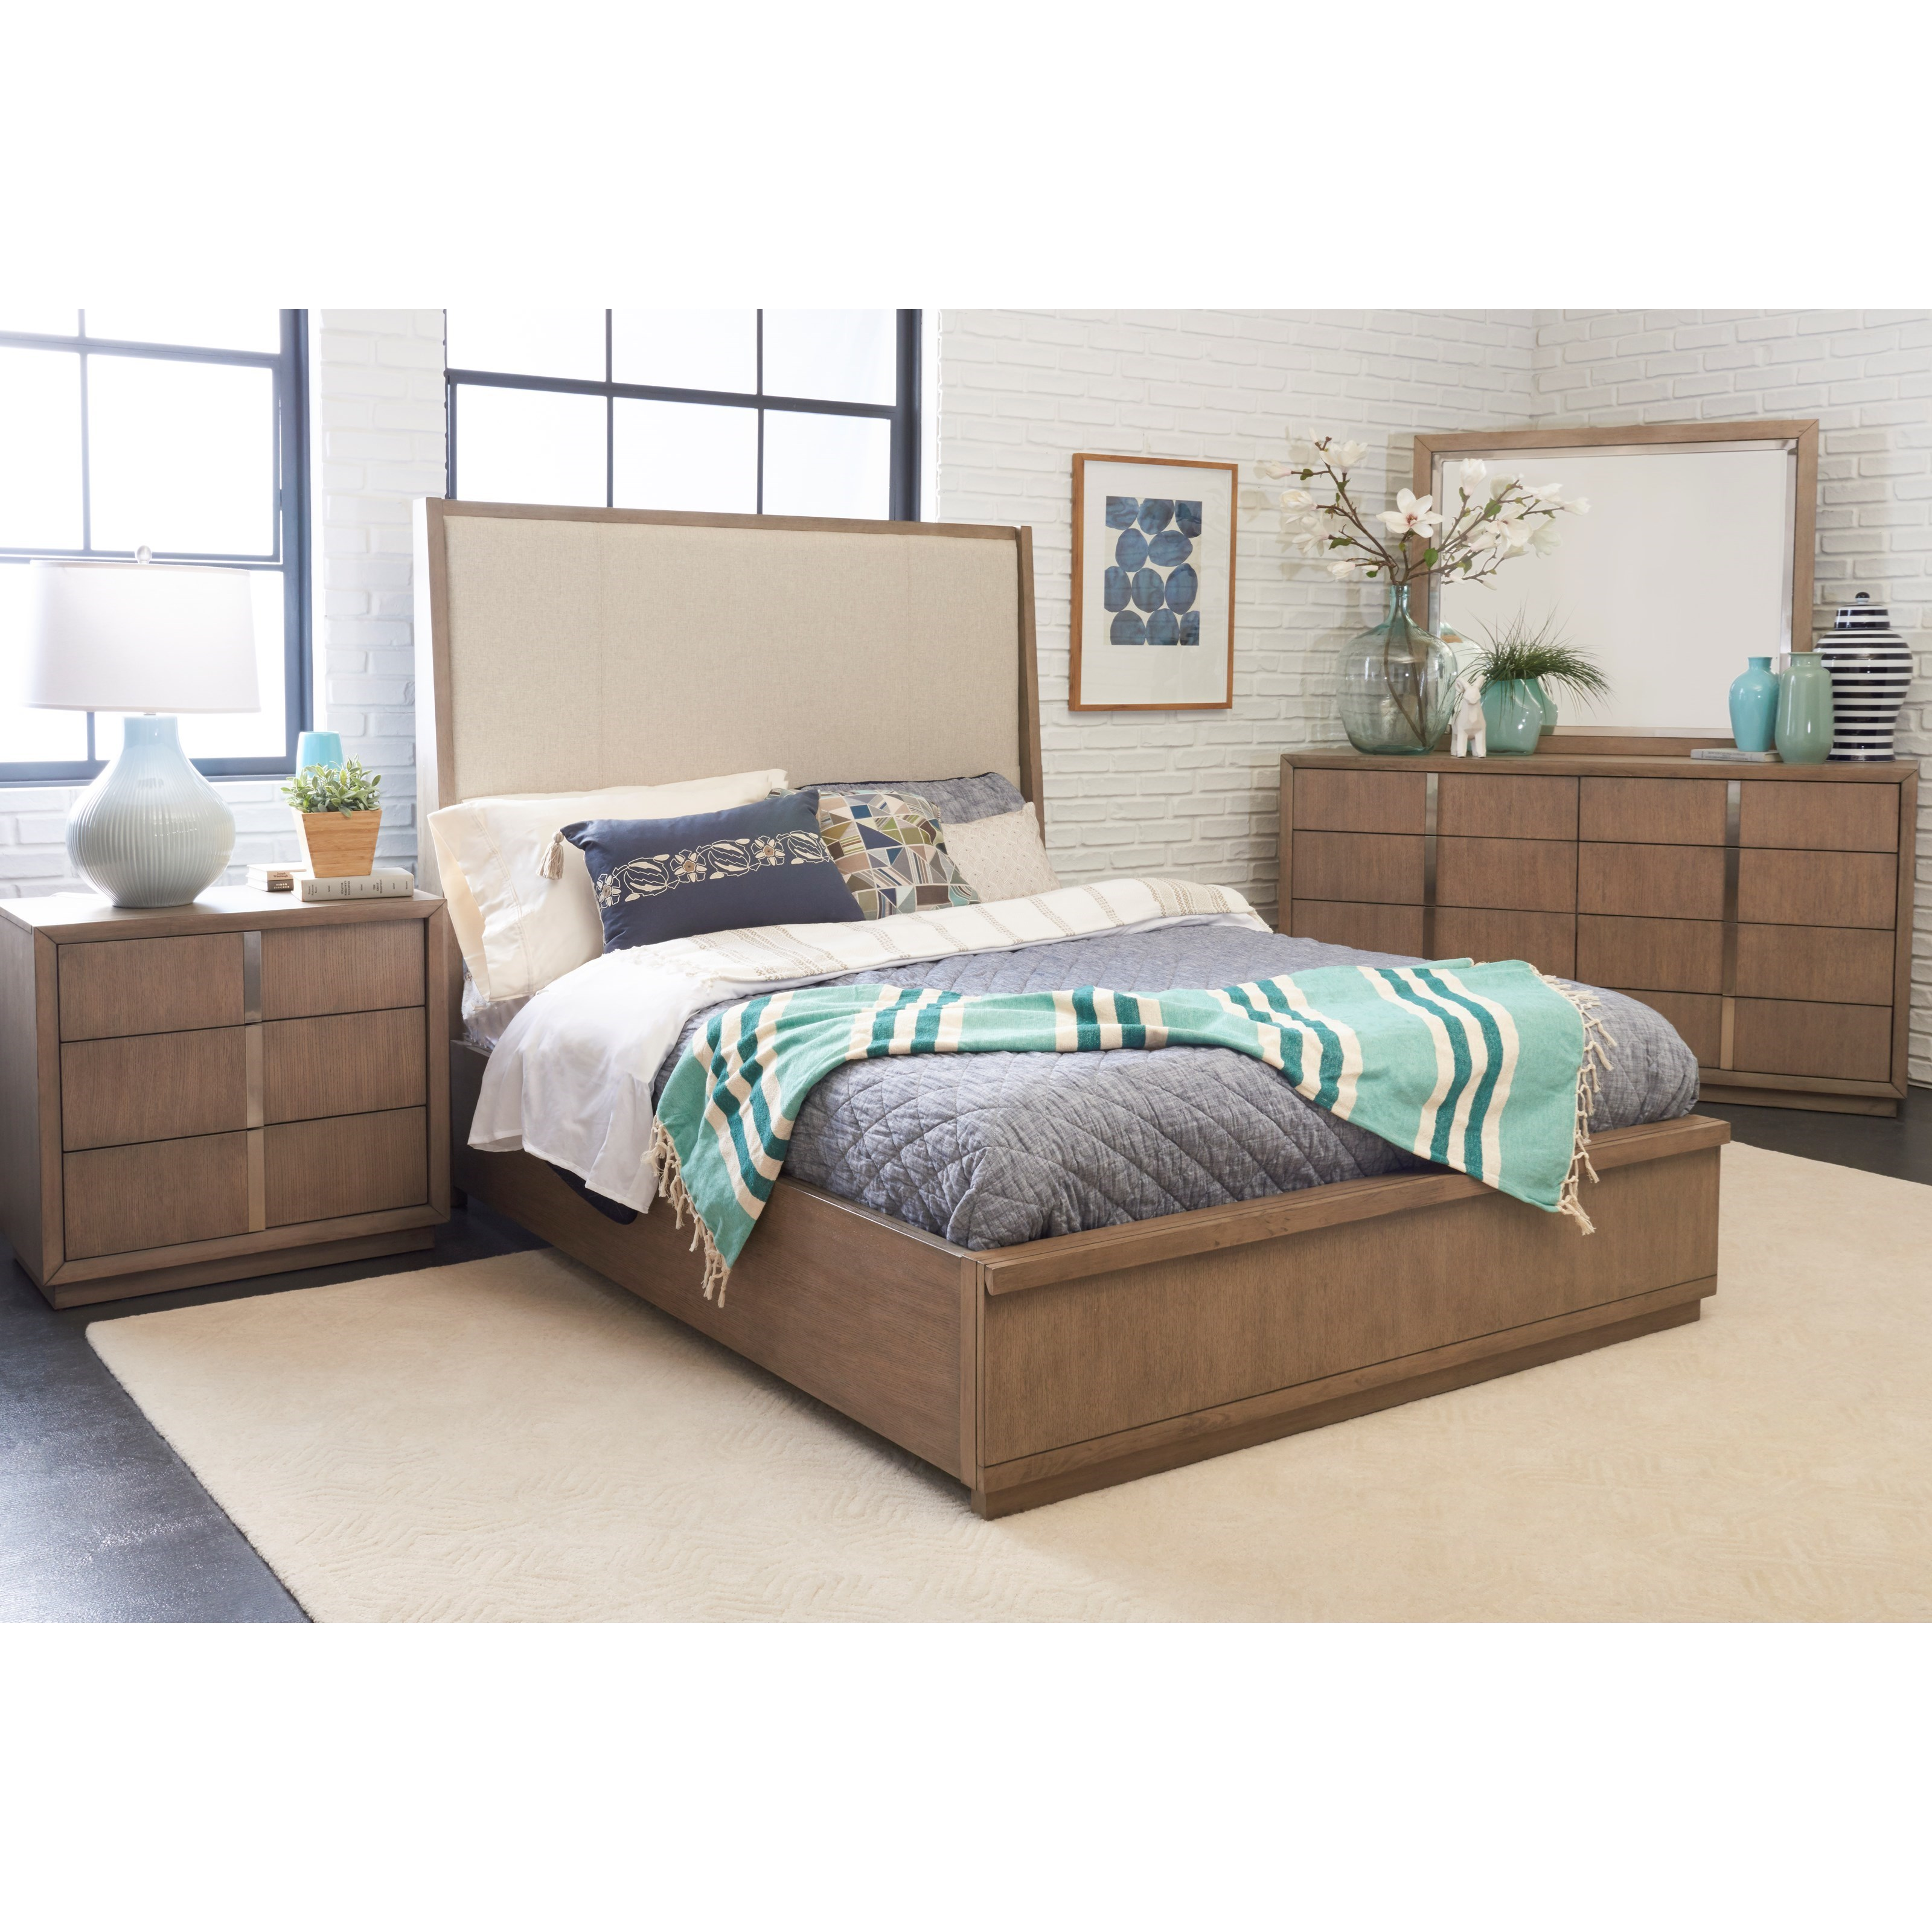 Melbourne CK Bedroom Group by Klaussner International at Pilgrim Furniture City